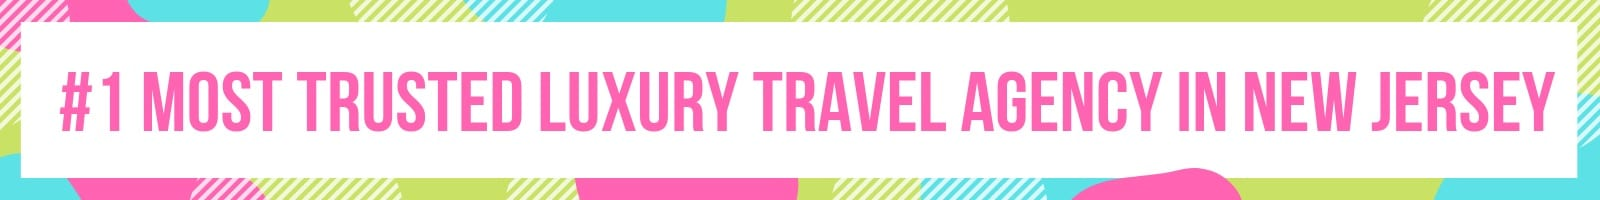 Banner with text - Most Trusted Luxury Travel Agency in New Jersey